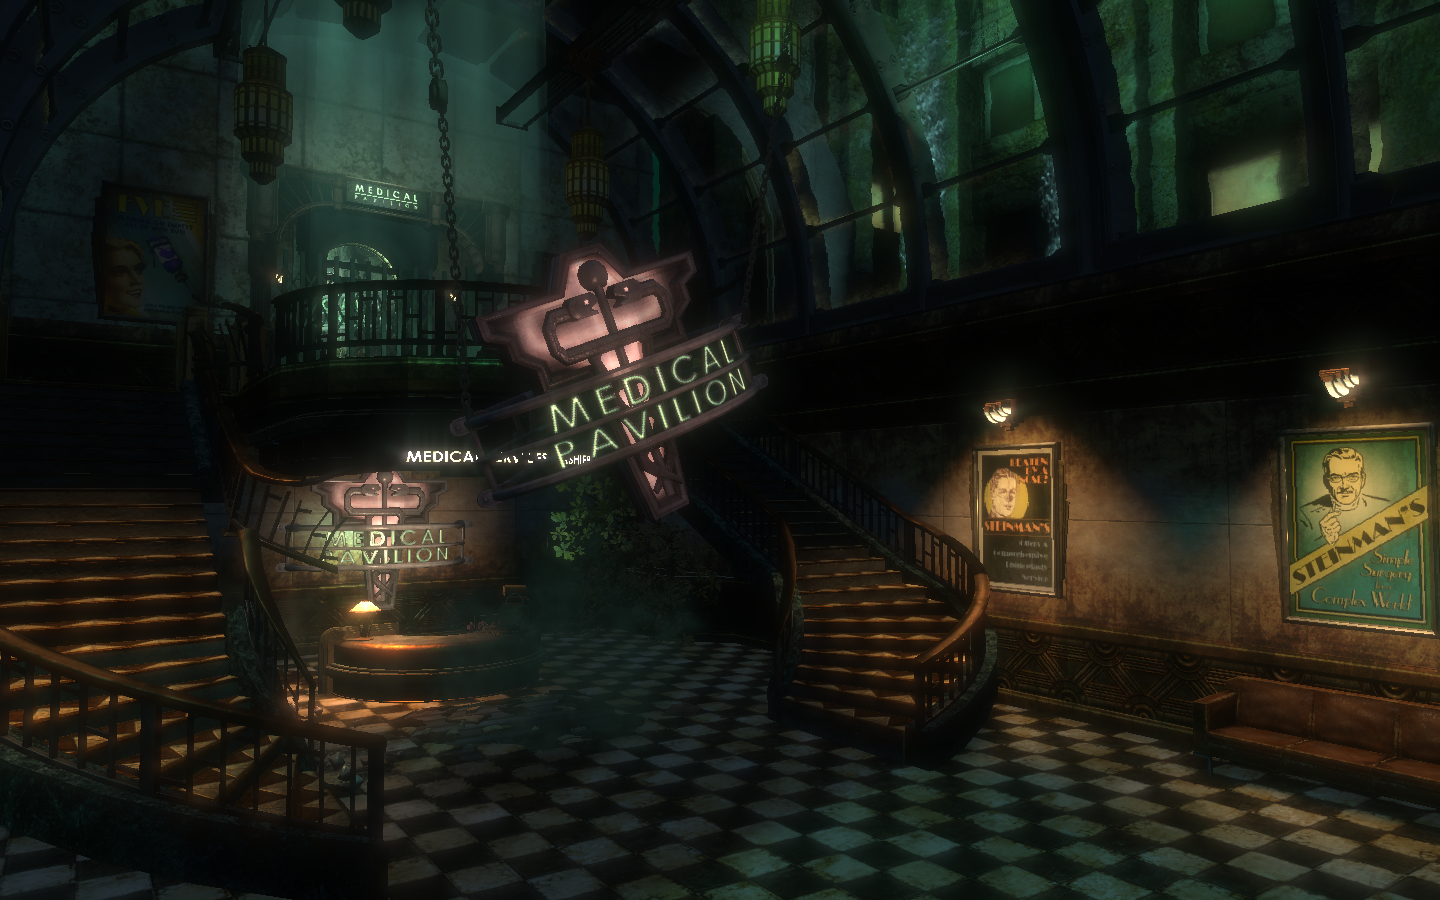 Foyer Wallpaper Xbox : Medical pavilion bioshock wiki fandom powered by wikia